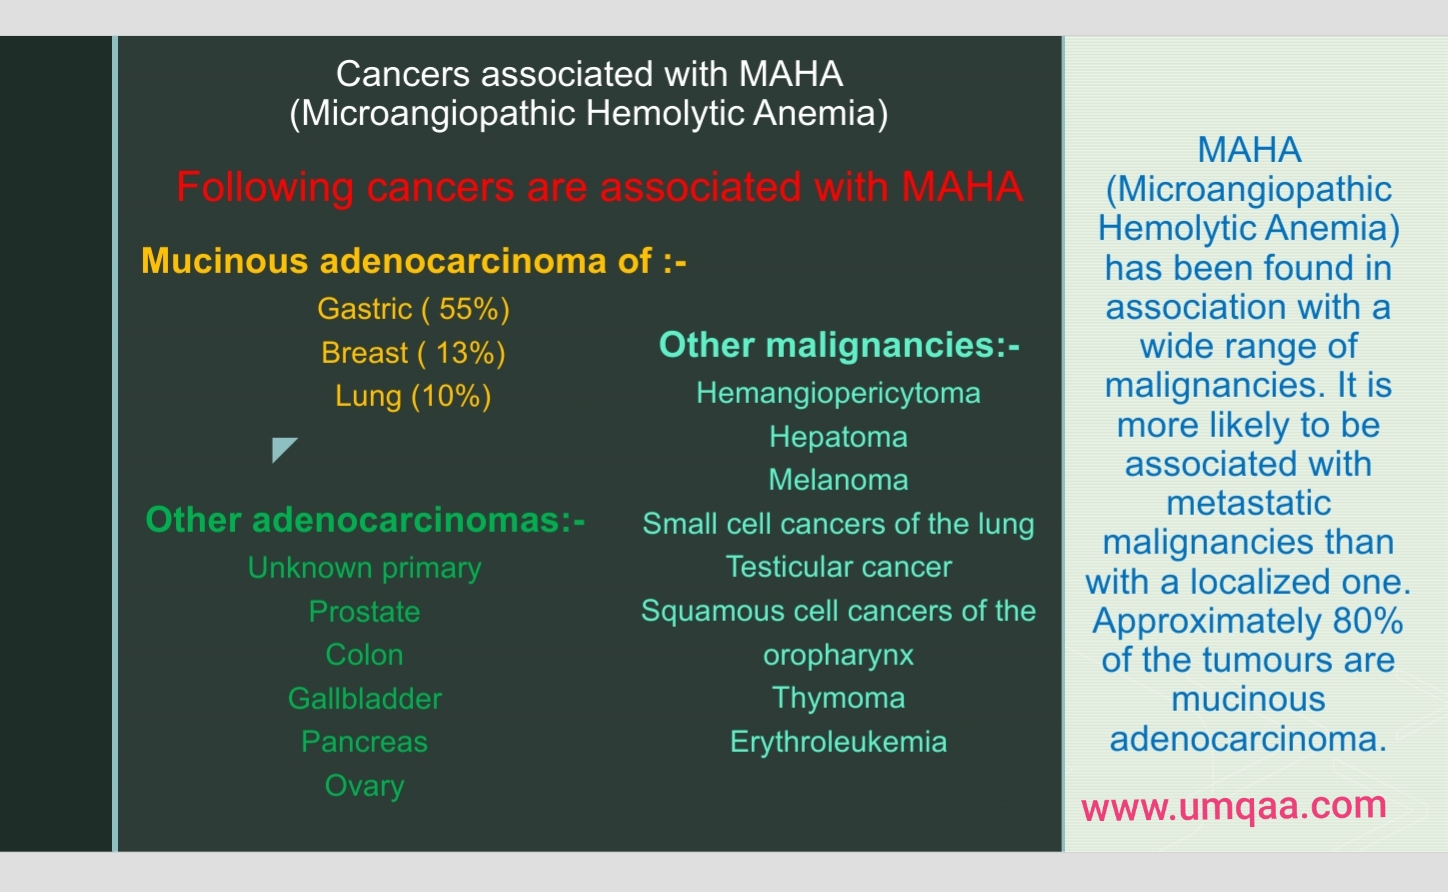 Cancers associated with MAHA